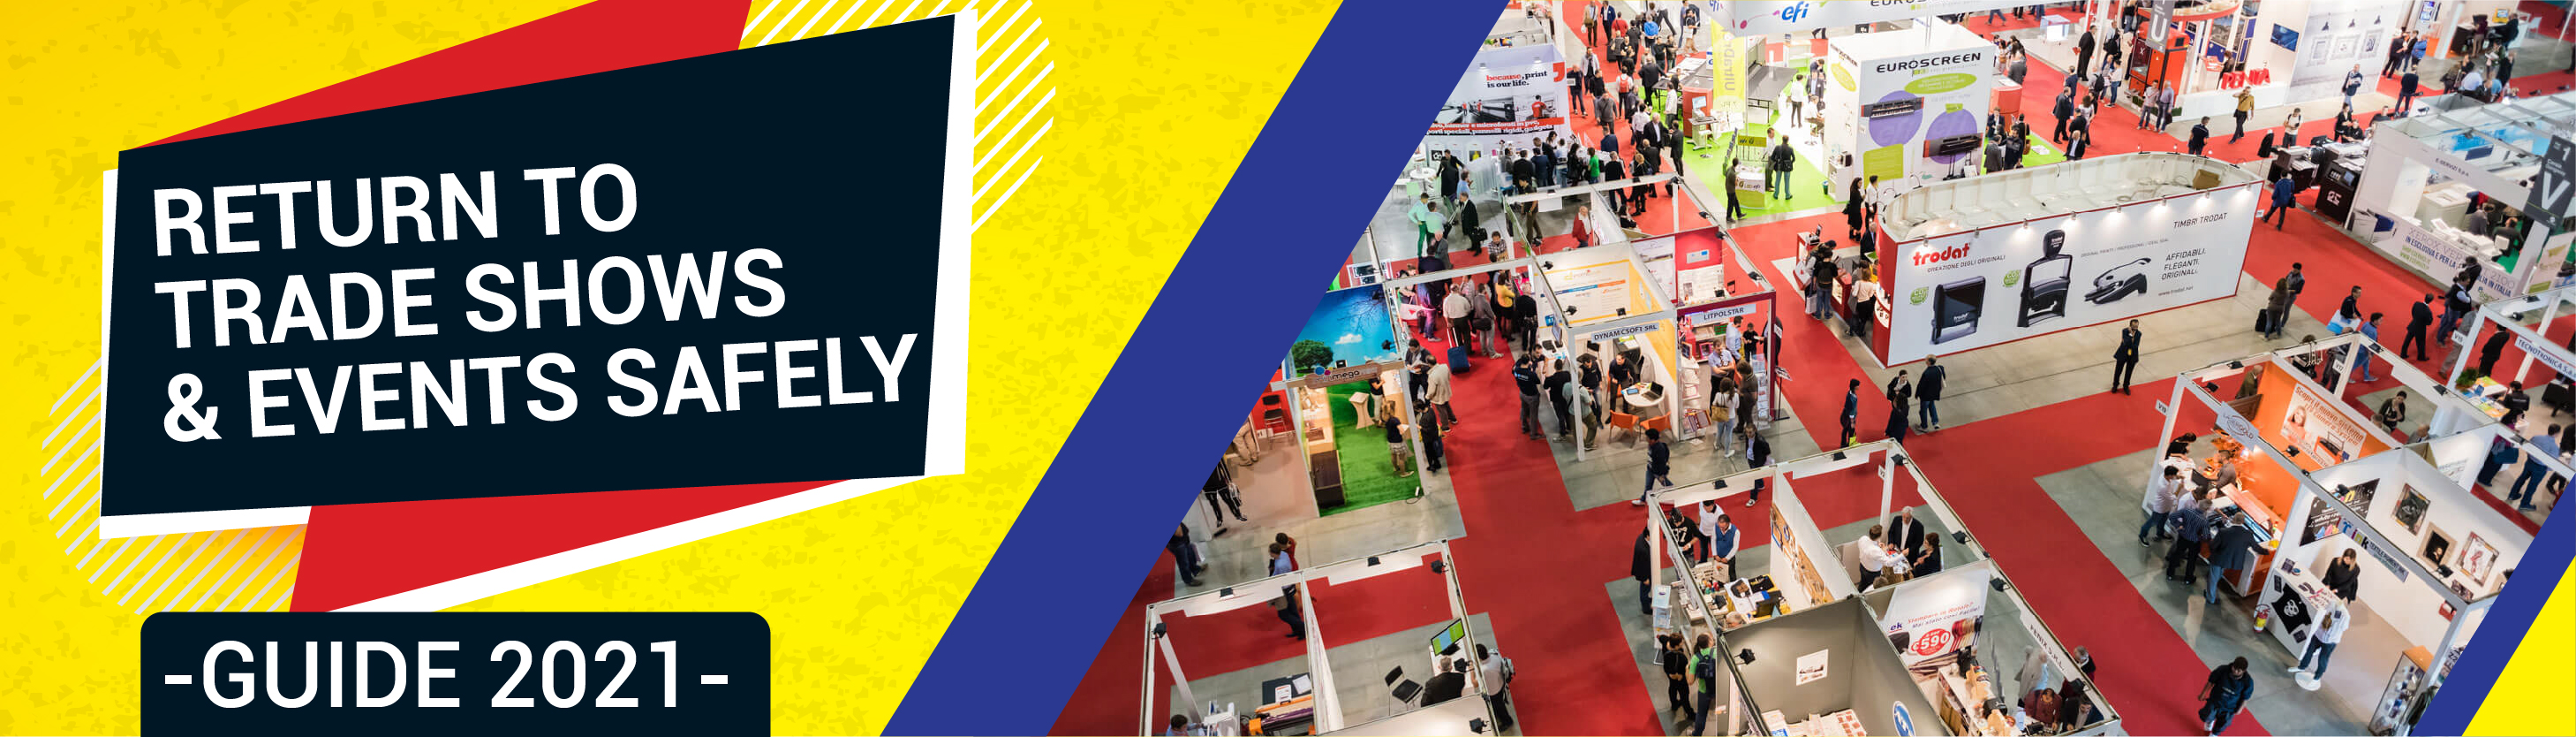 Return to Trade Shows & Events Safely Guide 2021